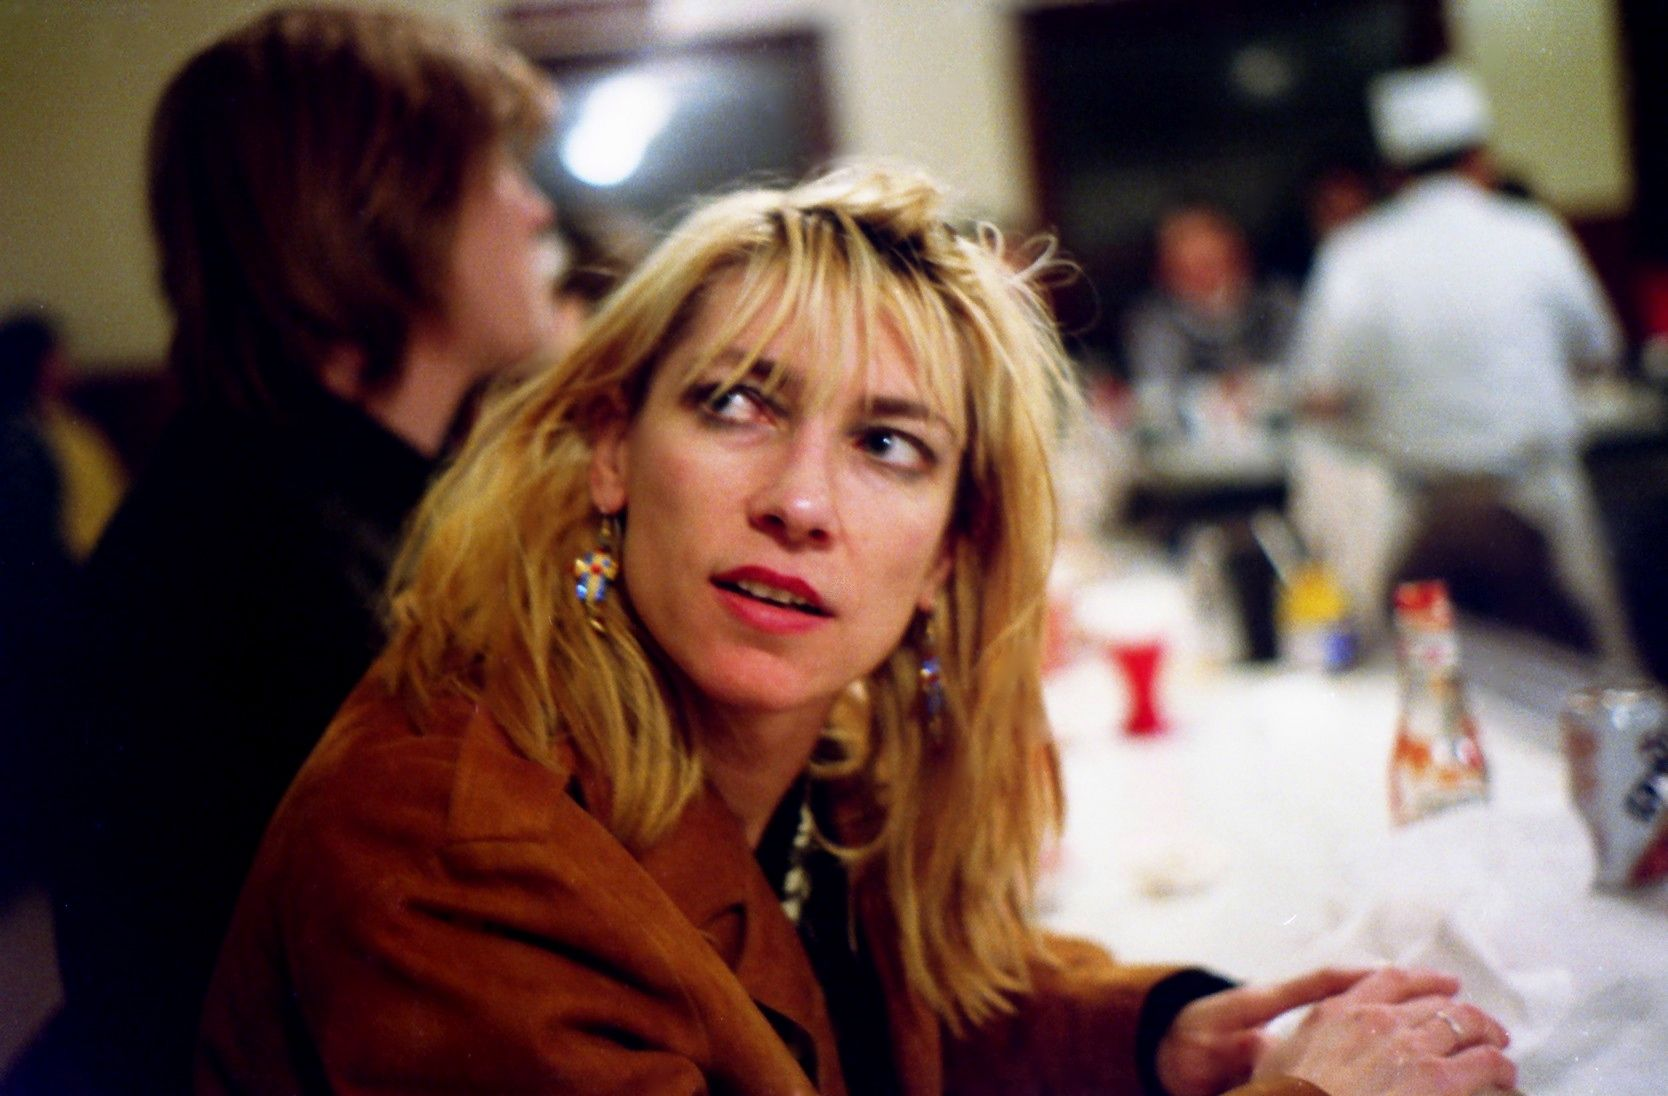 Anyone becomes mannered if you think too much about what other people think. -Kim Gordon